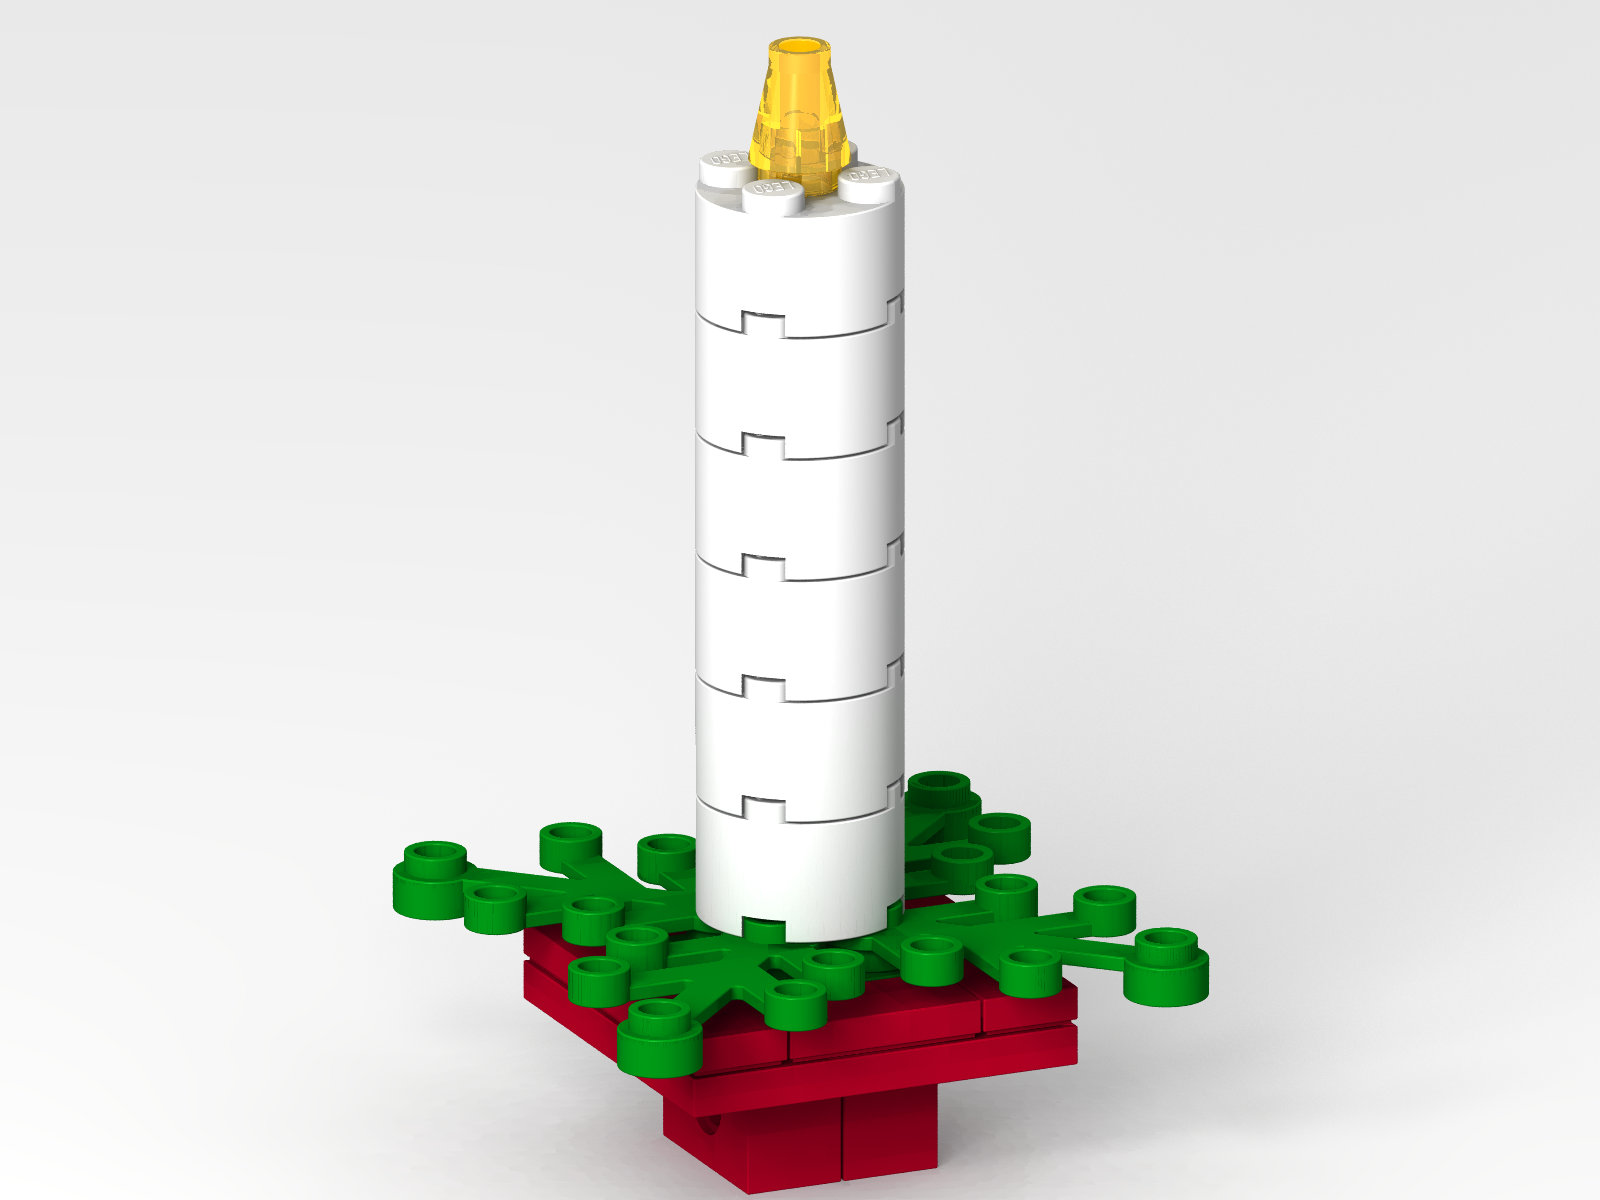 Candles Lego candle, Lego christmas tree, Lego ornaments